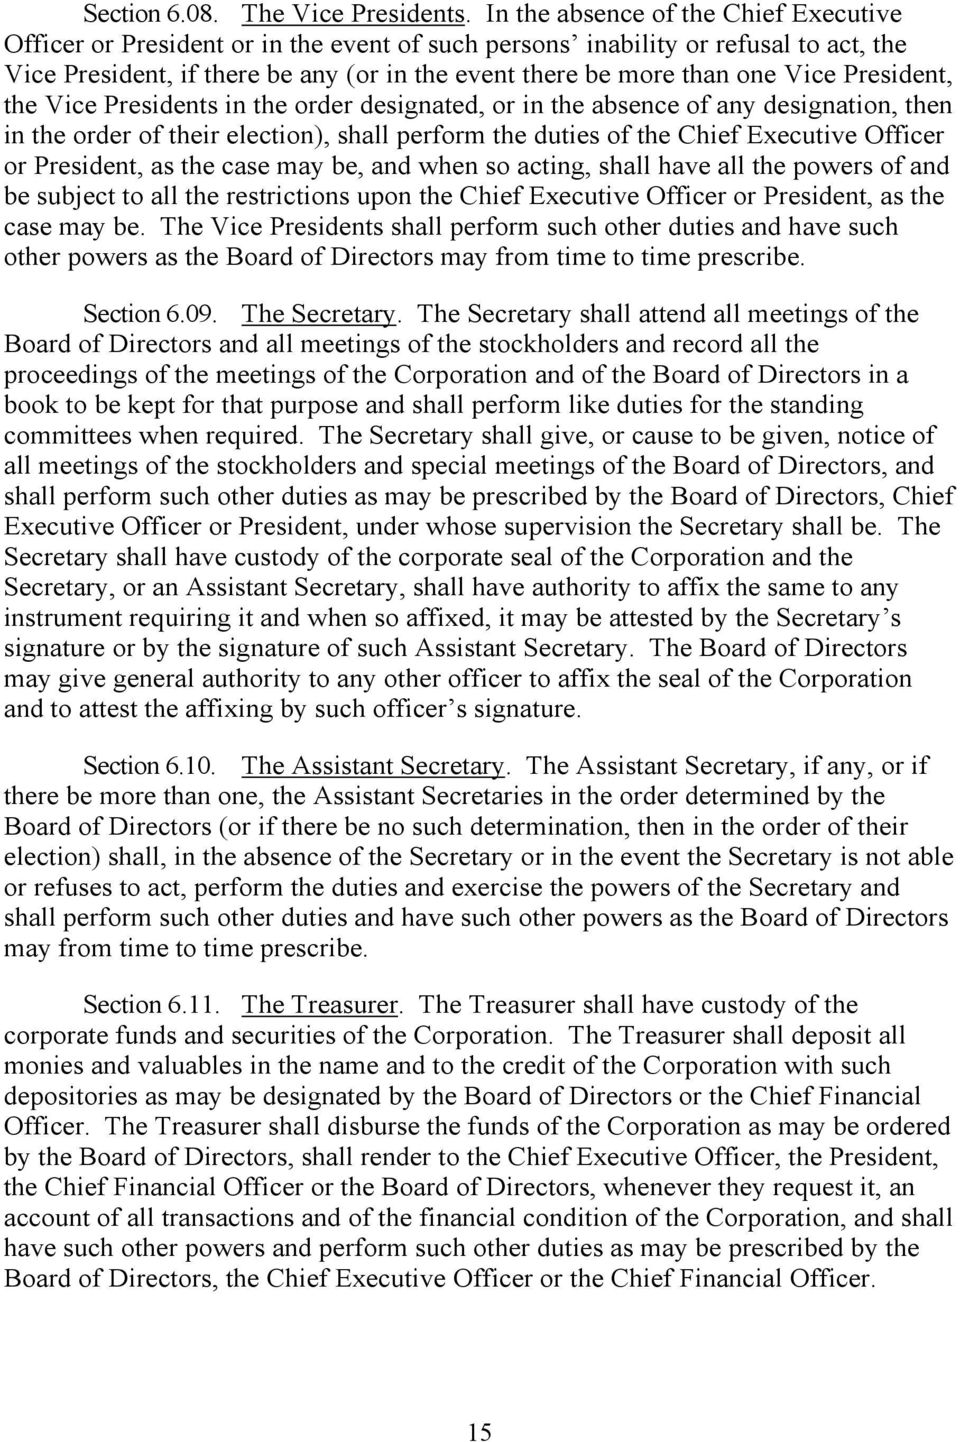 Vice President, the Vice Presidents in the order designated, or in the absence of any designation, then in the order of their election), shall perform the duties of the Chief Executive Officer or